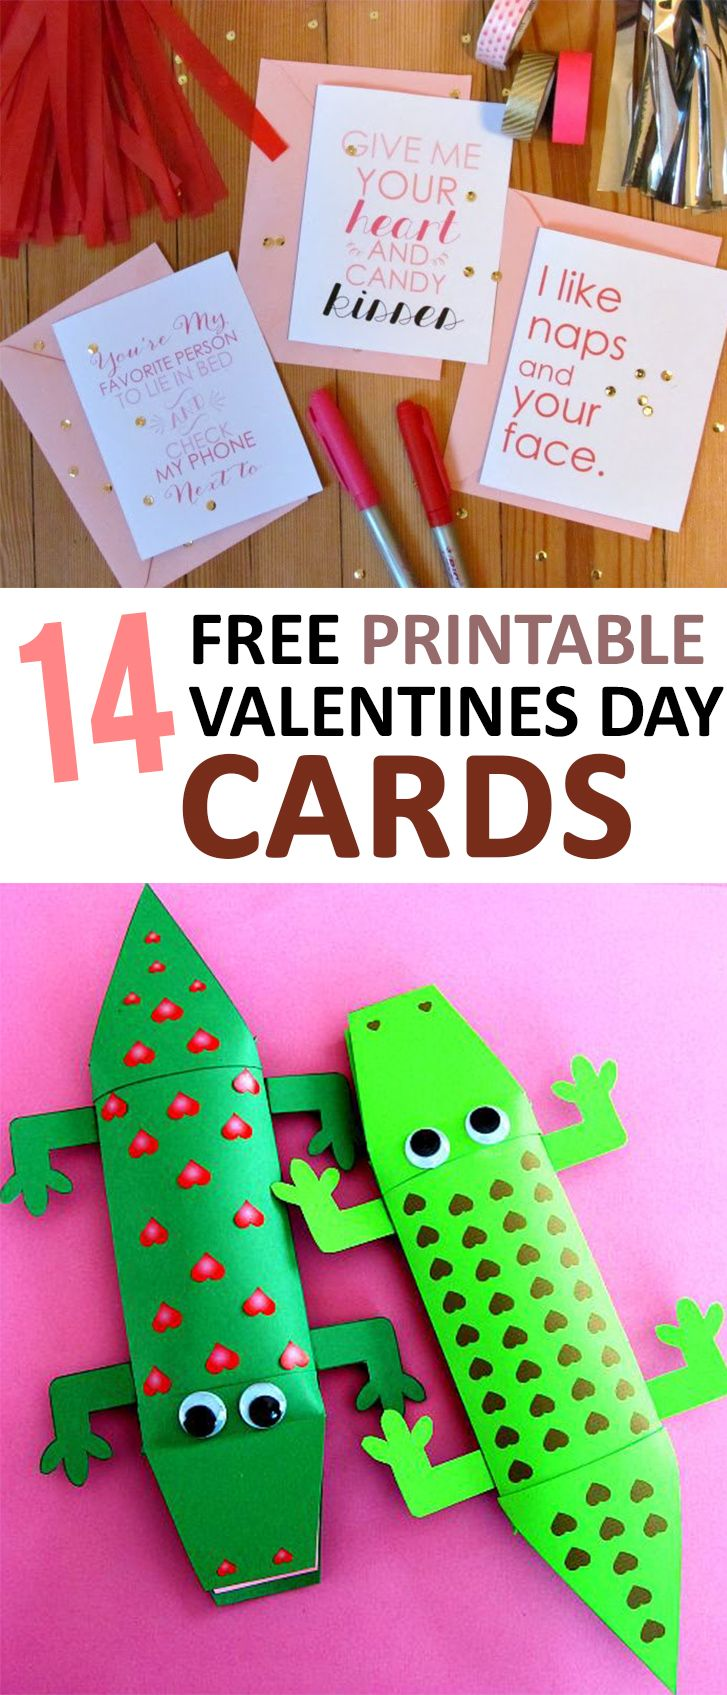 14 Free Printable Valentines Day Cards -